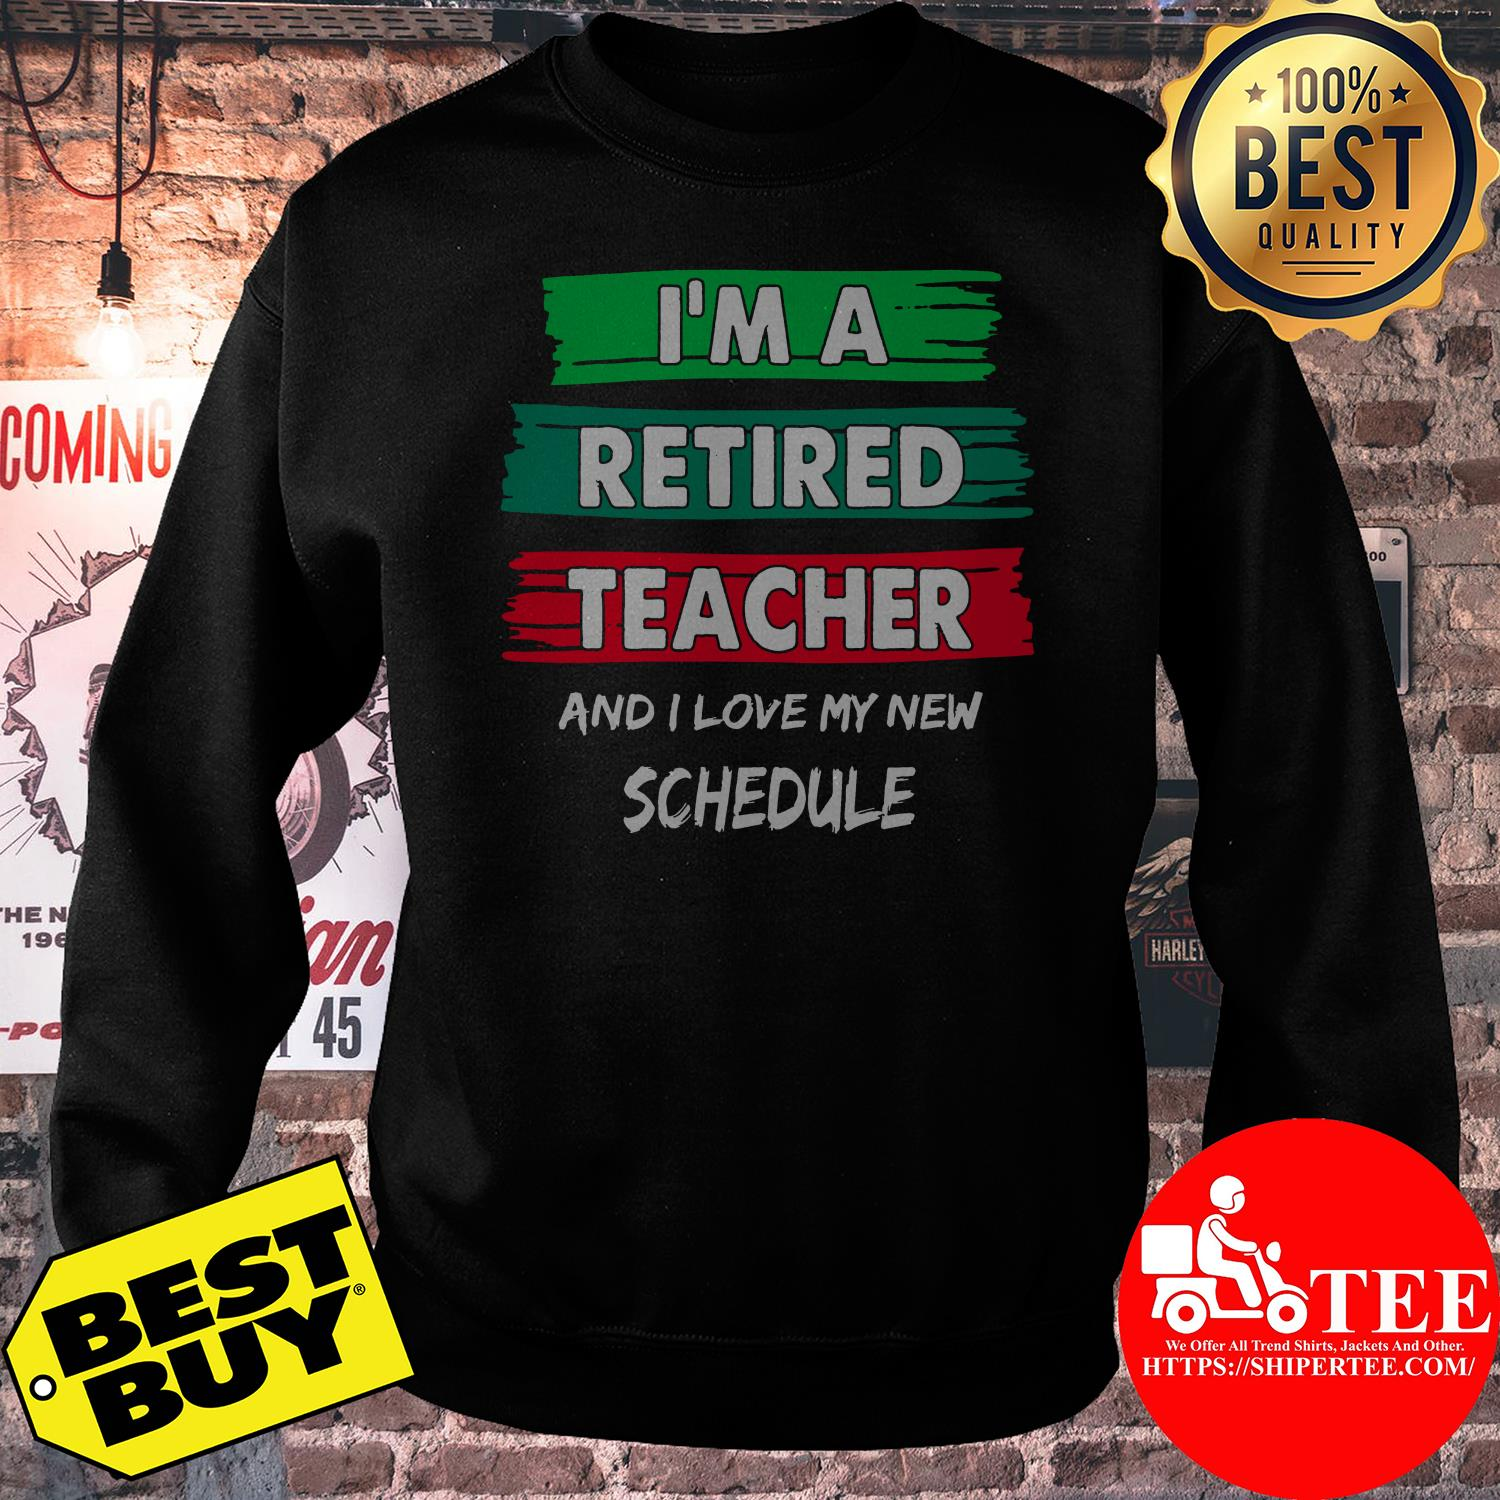 I'm a retired teacher and I love my new schedule sweatshirt